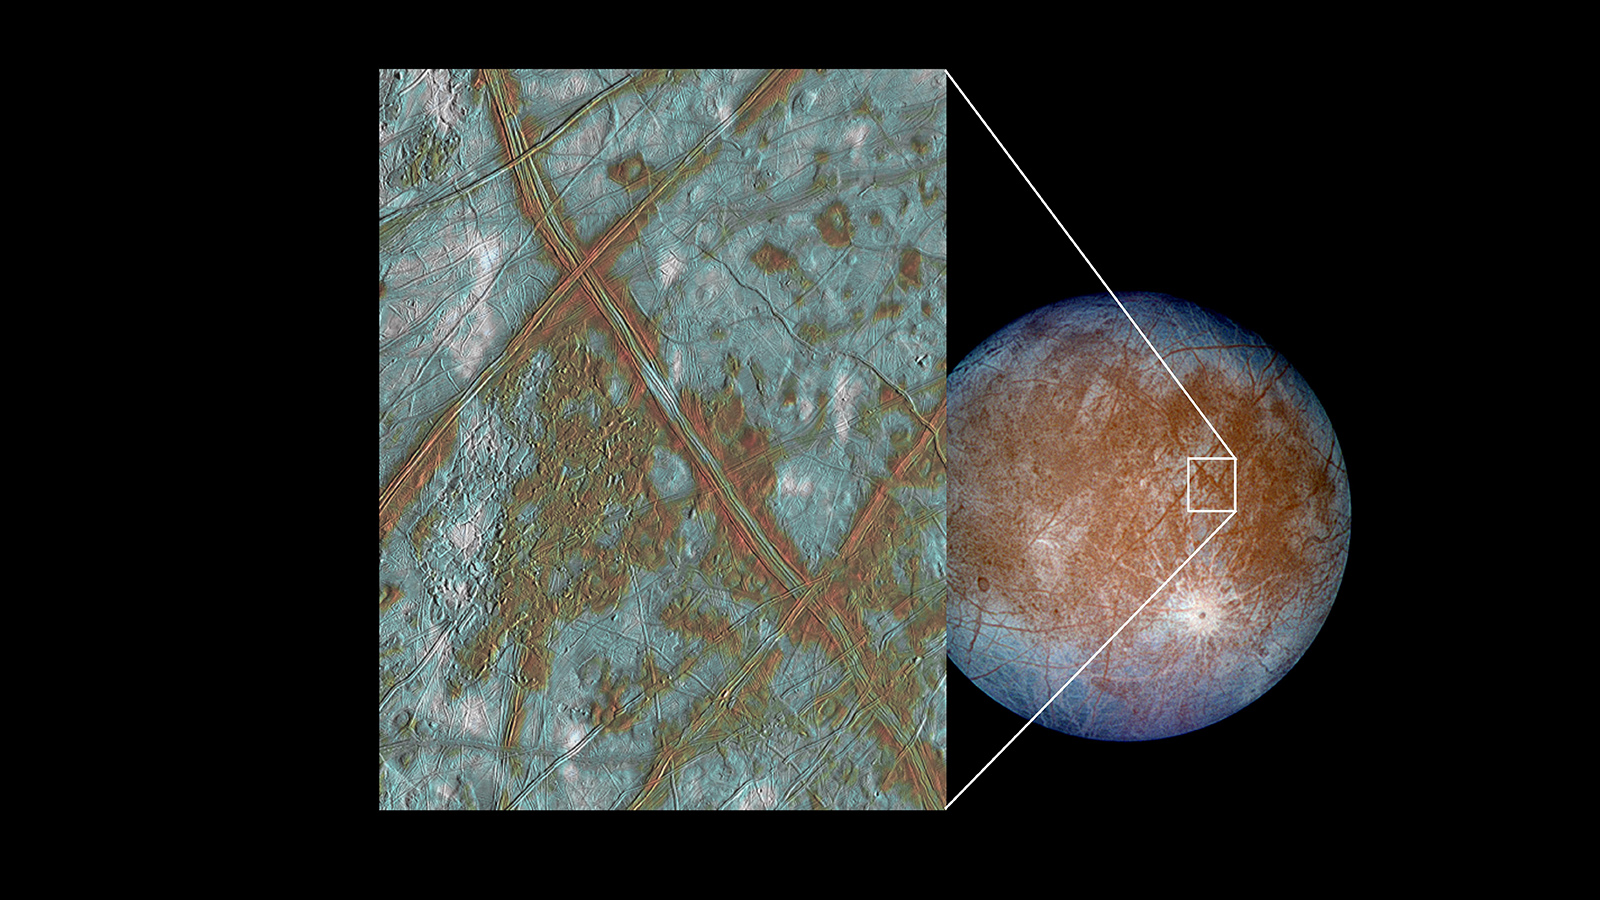 slide 3 - Color image focusing on squarish features of Europa's surface.